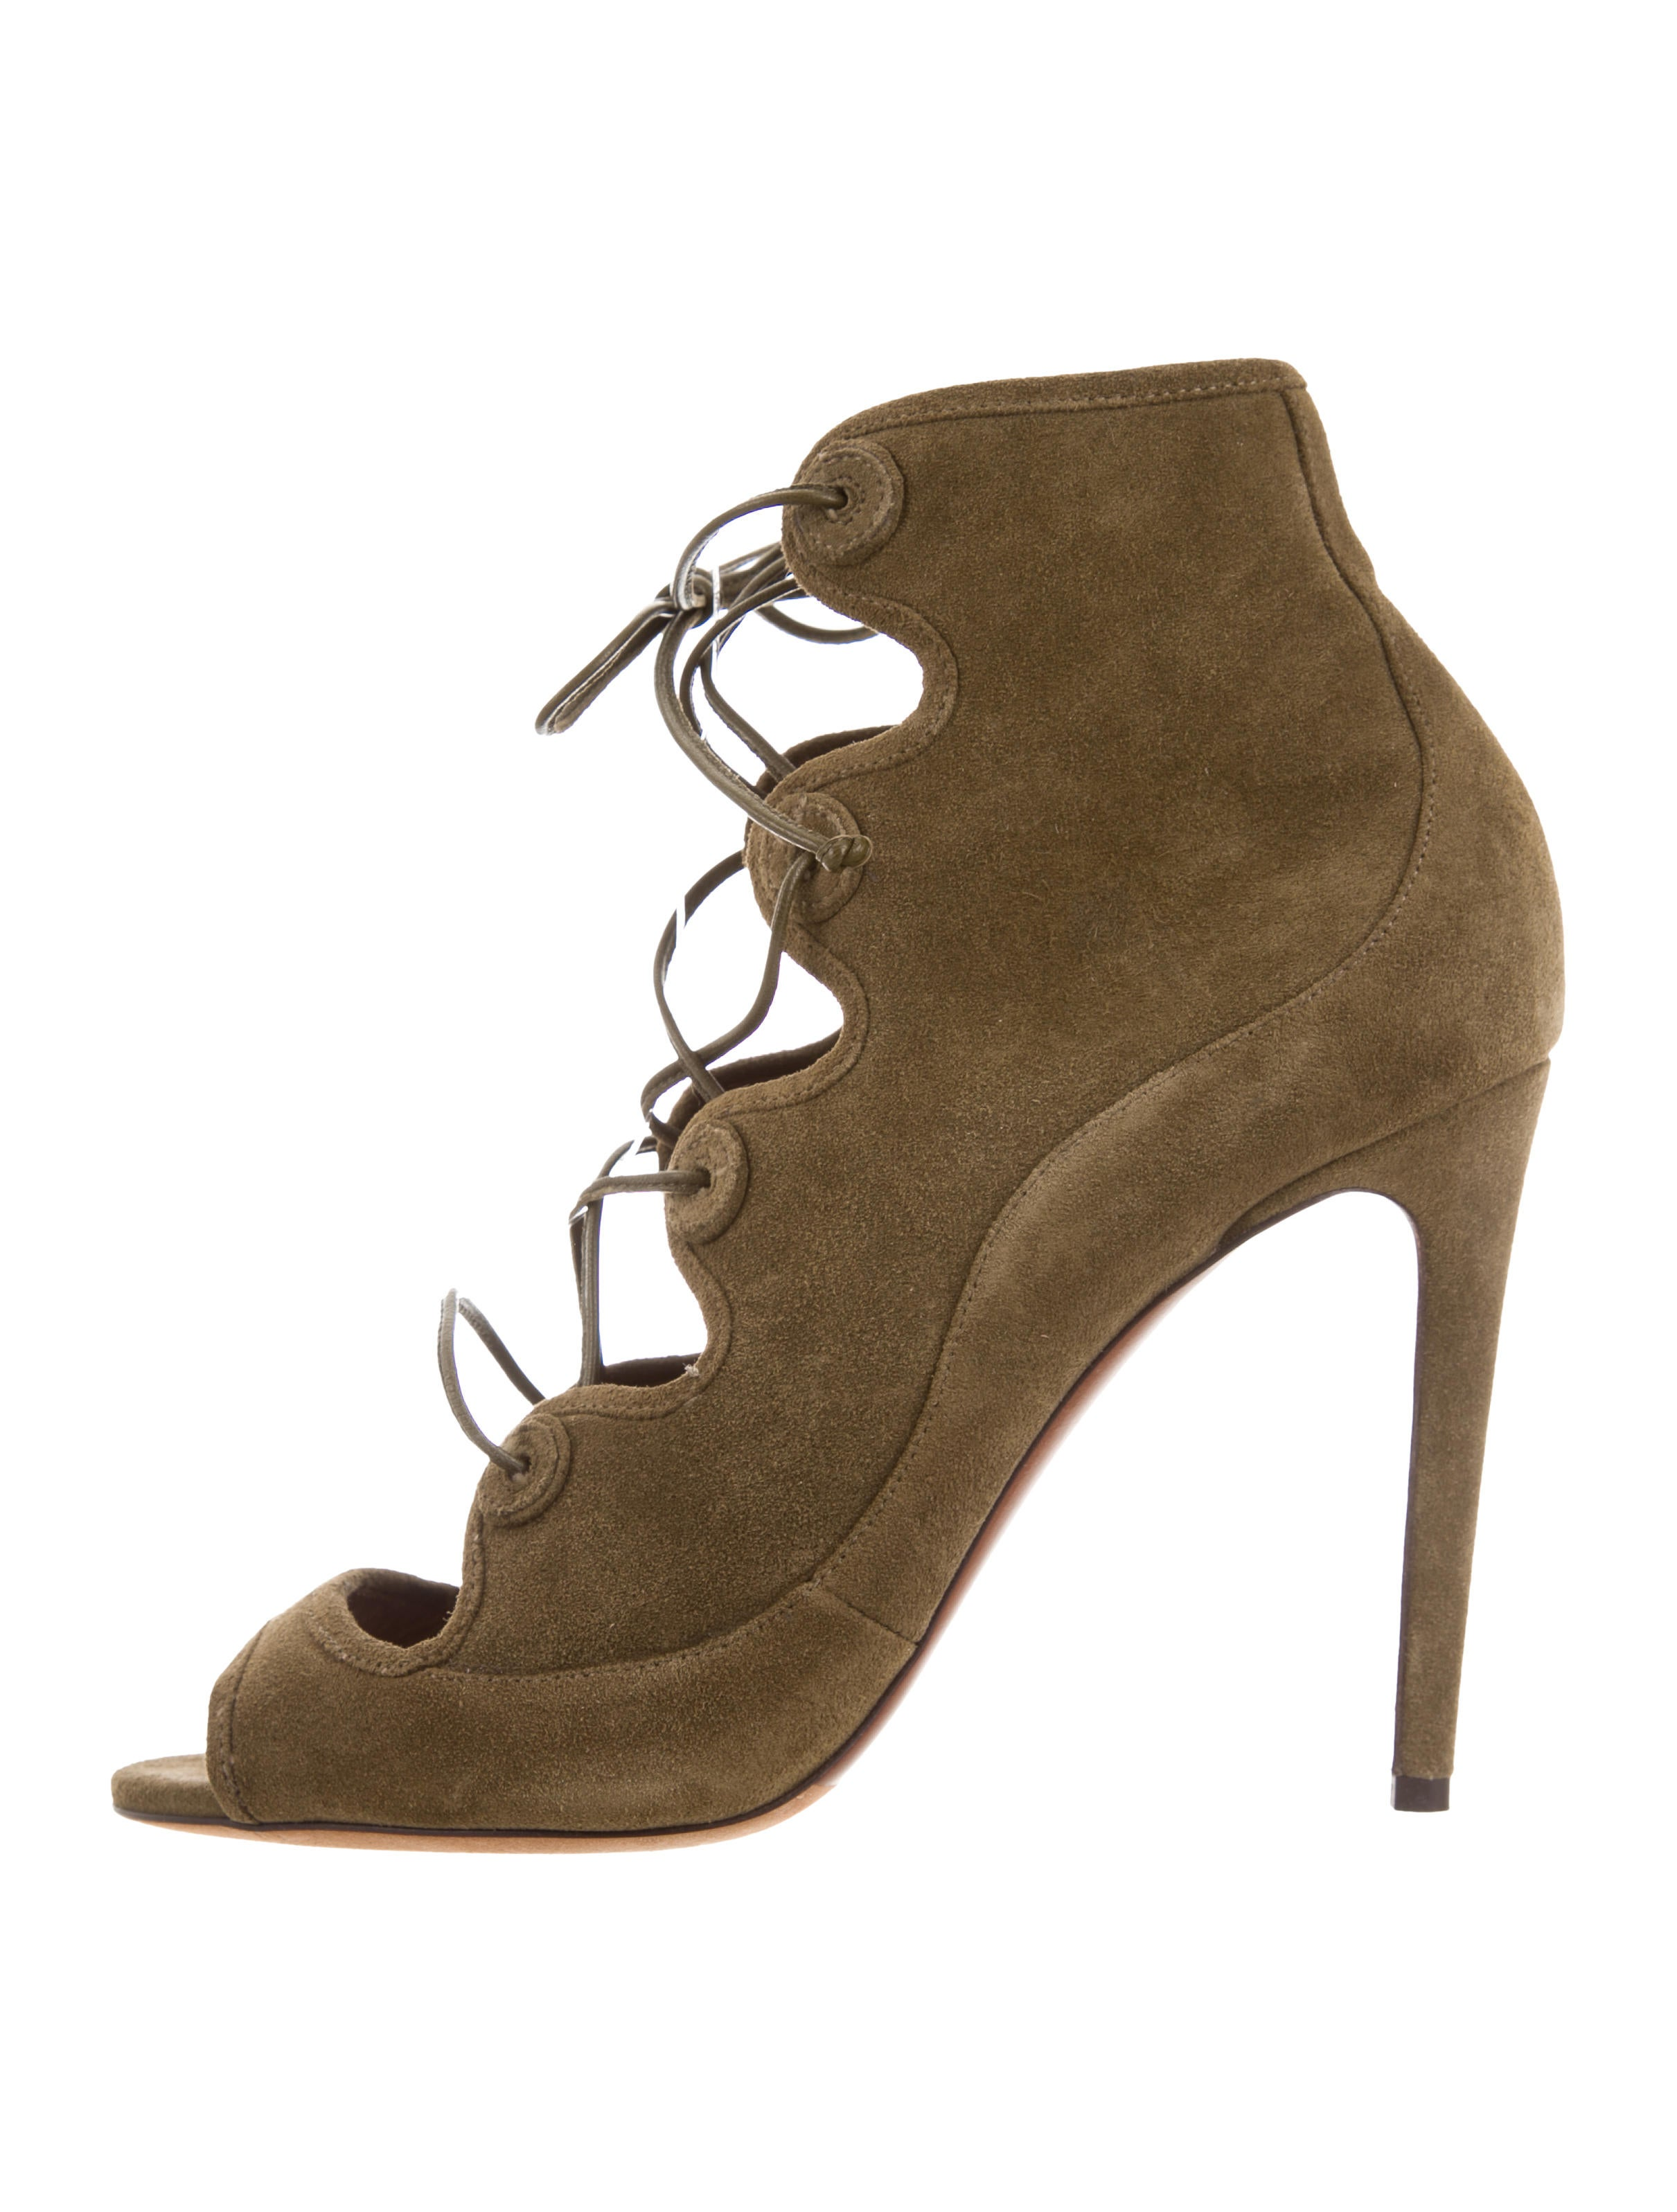 Tabitha Simmons Charlotte Lace-Up Booties w/ Tags discount visa payment sale deals cheap enjoy SqzXH0WOh